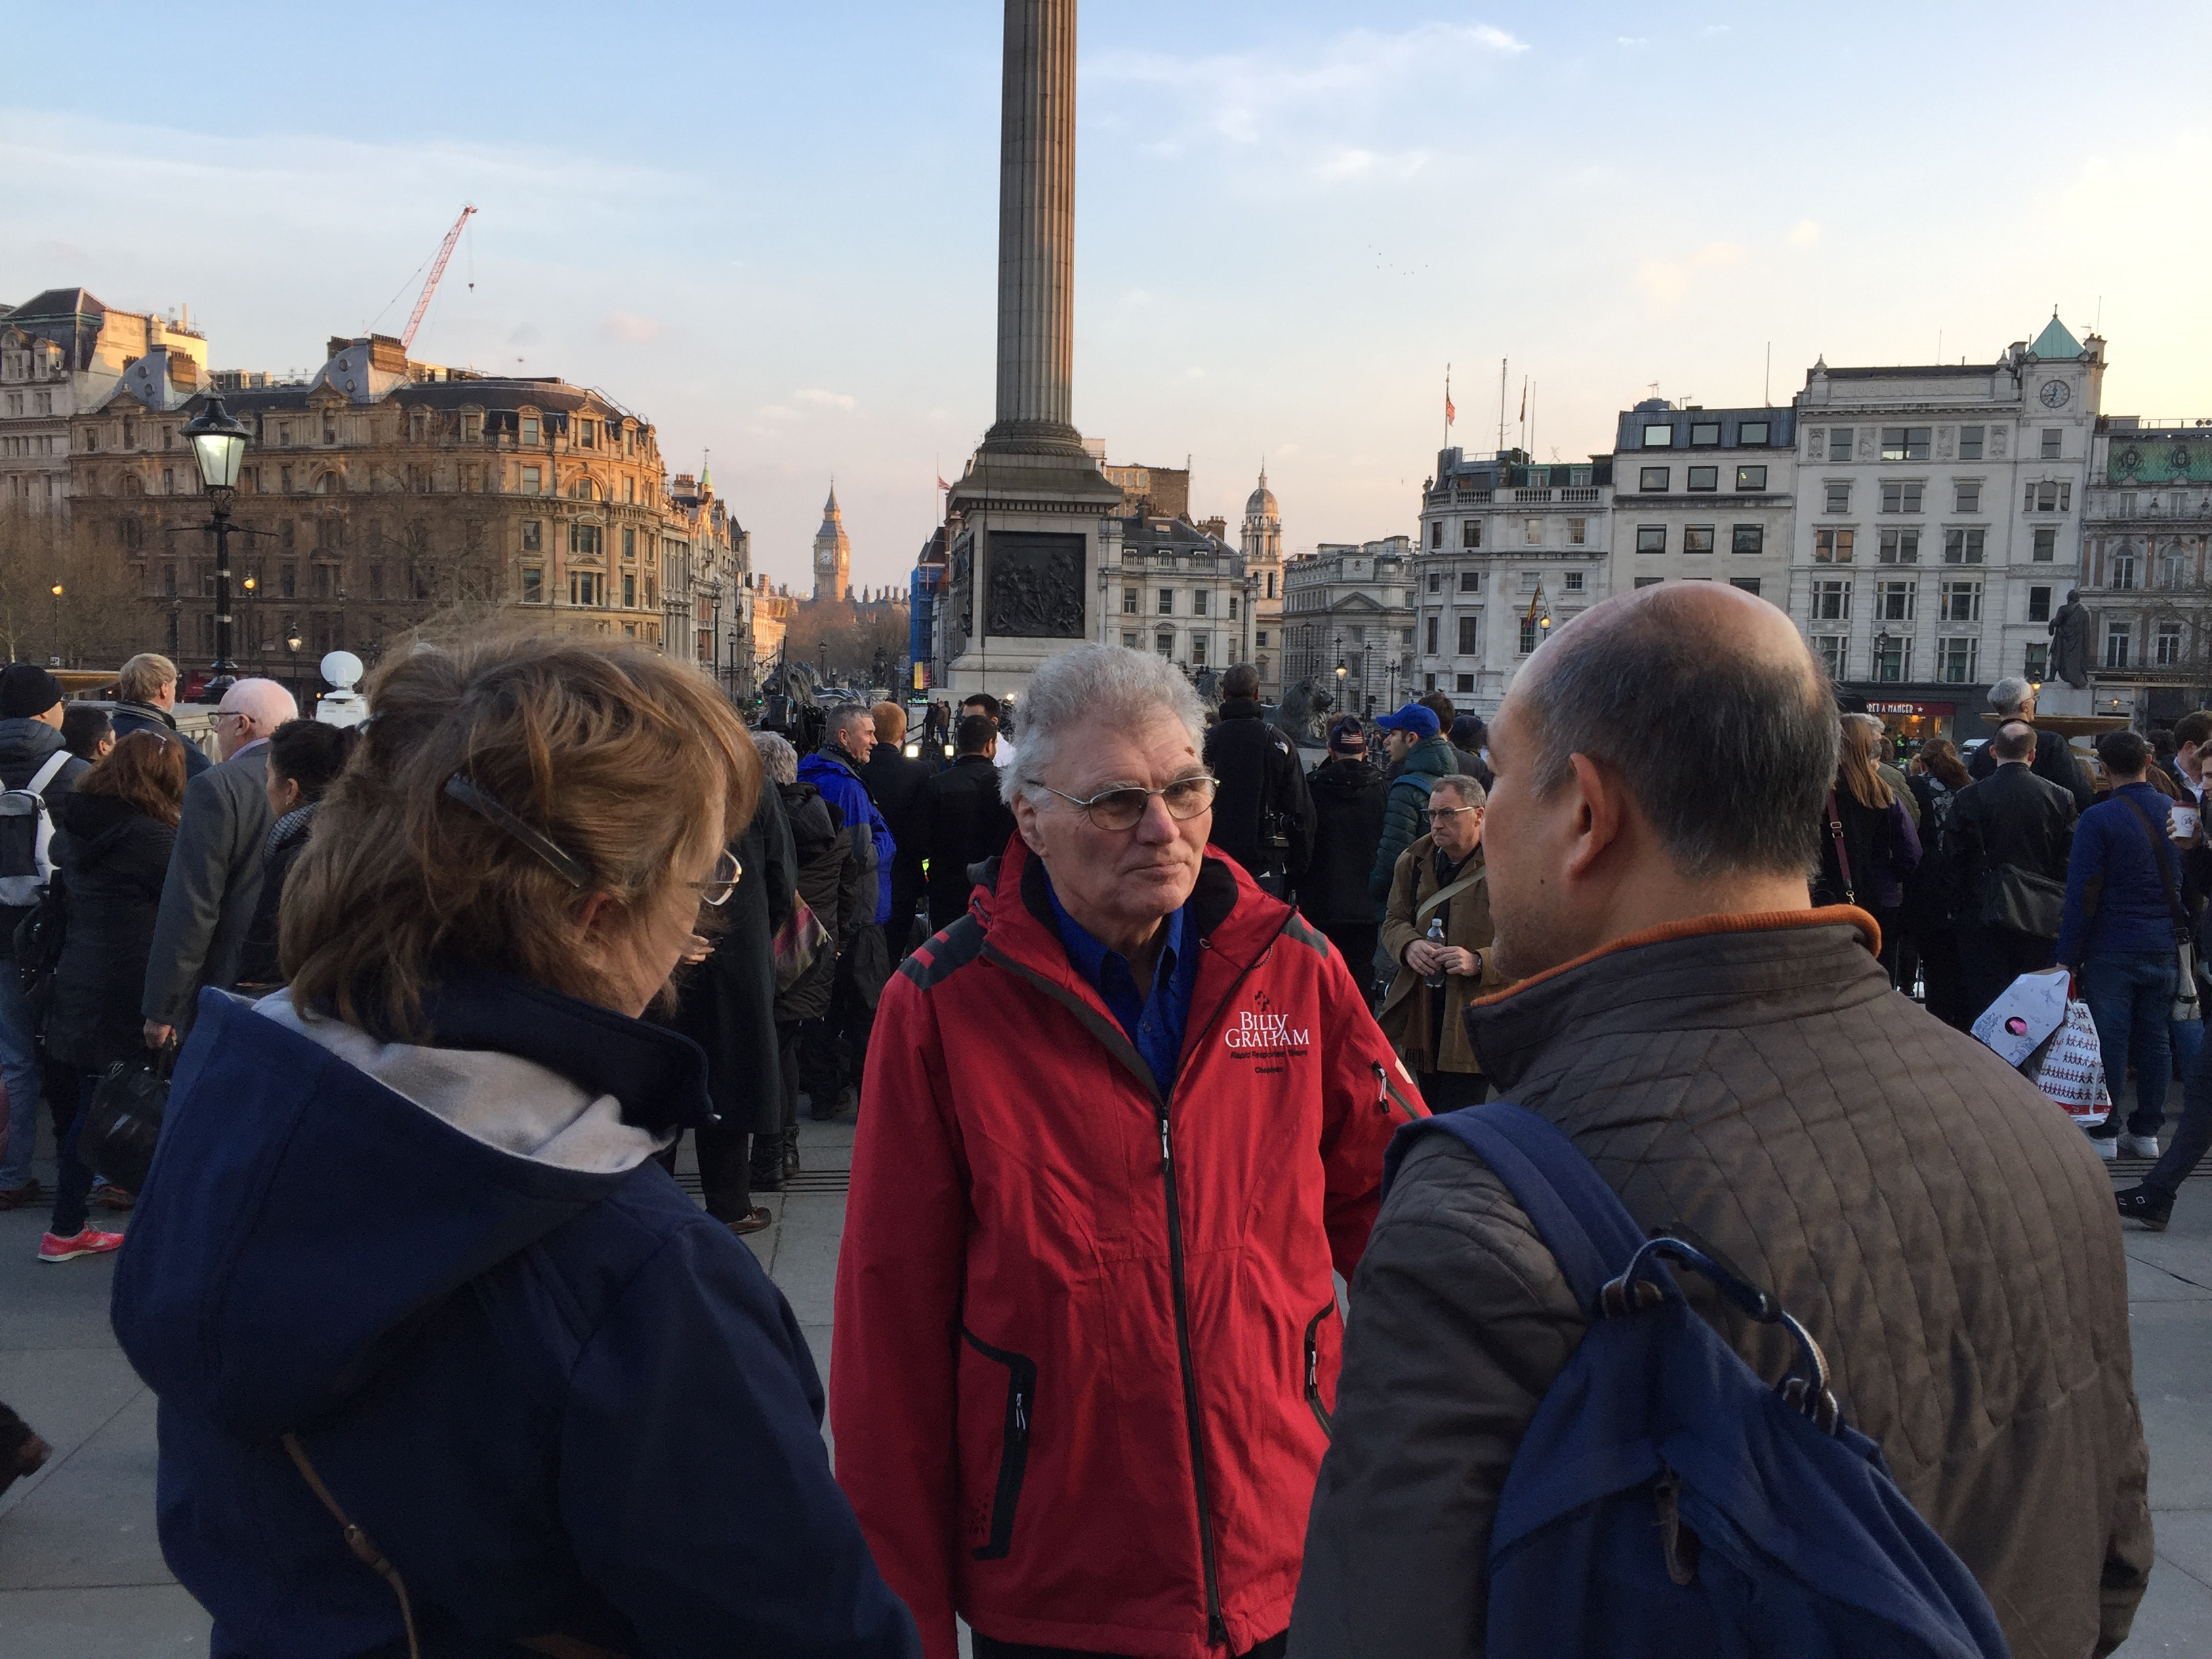 Rapid Response Chaplains engage with a Londoner